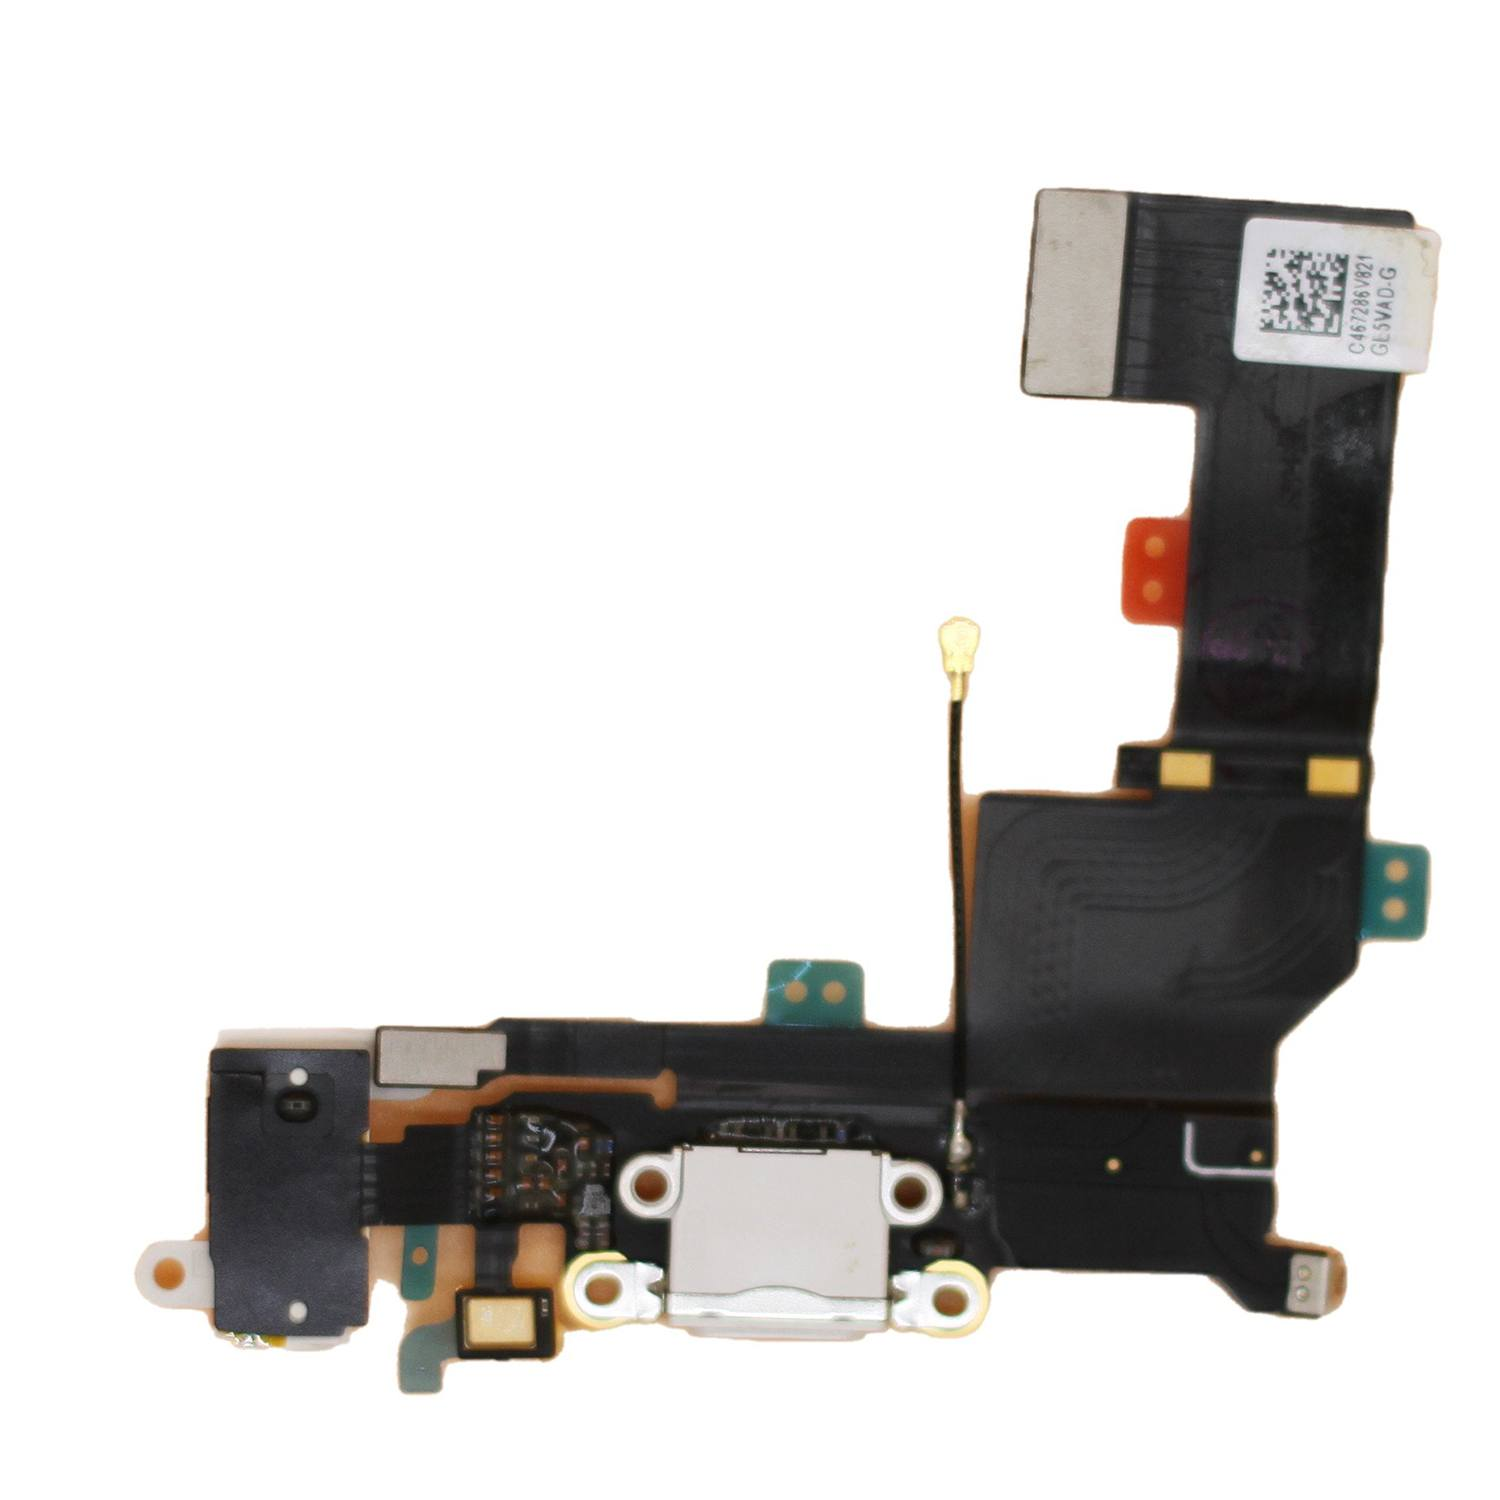 New White iPhone SE Charging Port + Microphone + Audio Jack Flex Cable Pic0